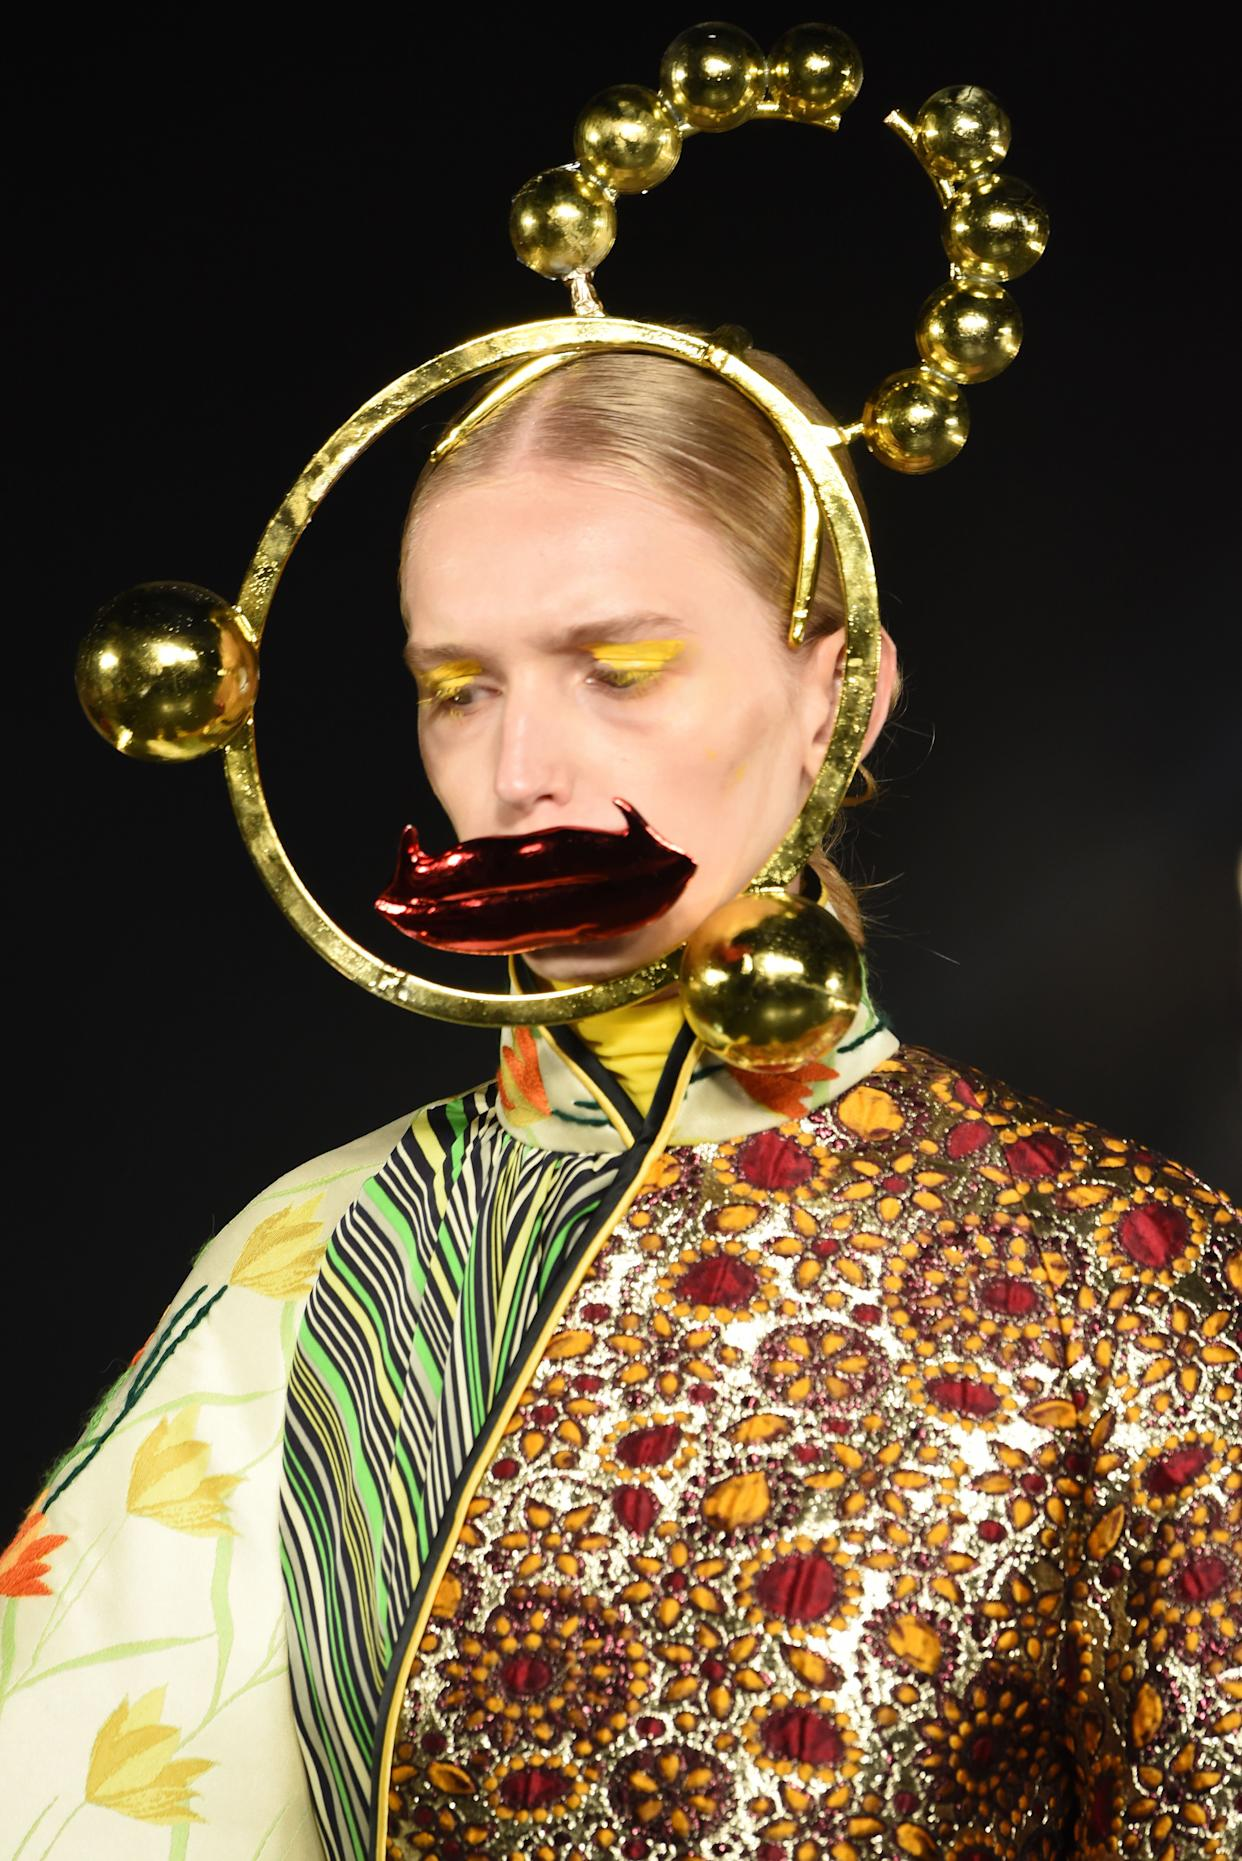 Shuting Qiu, another designer who showed her collection at the VFiles event, accessorized outfits with surreal sculptural head pieces.